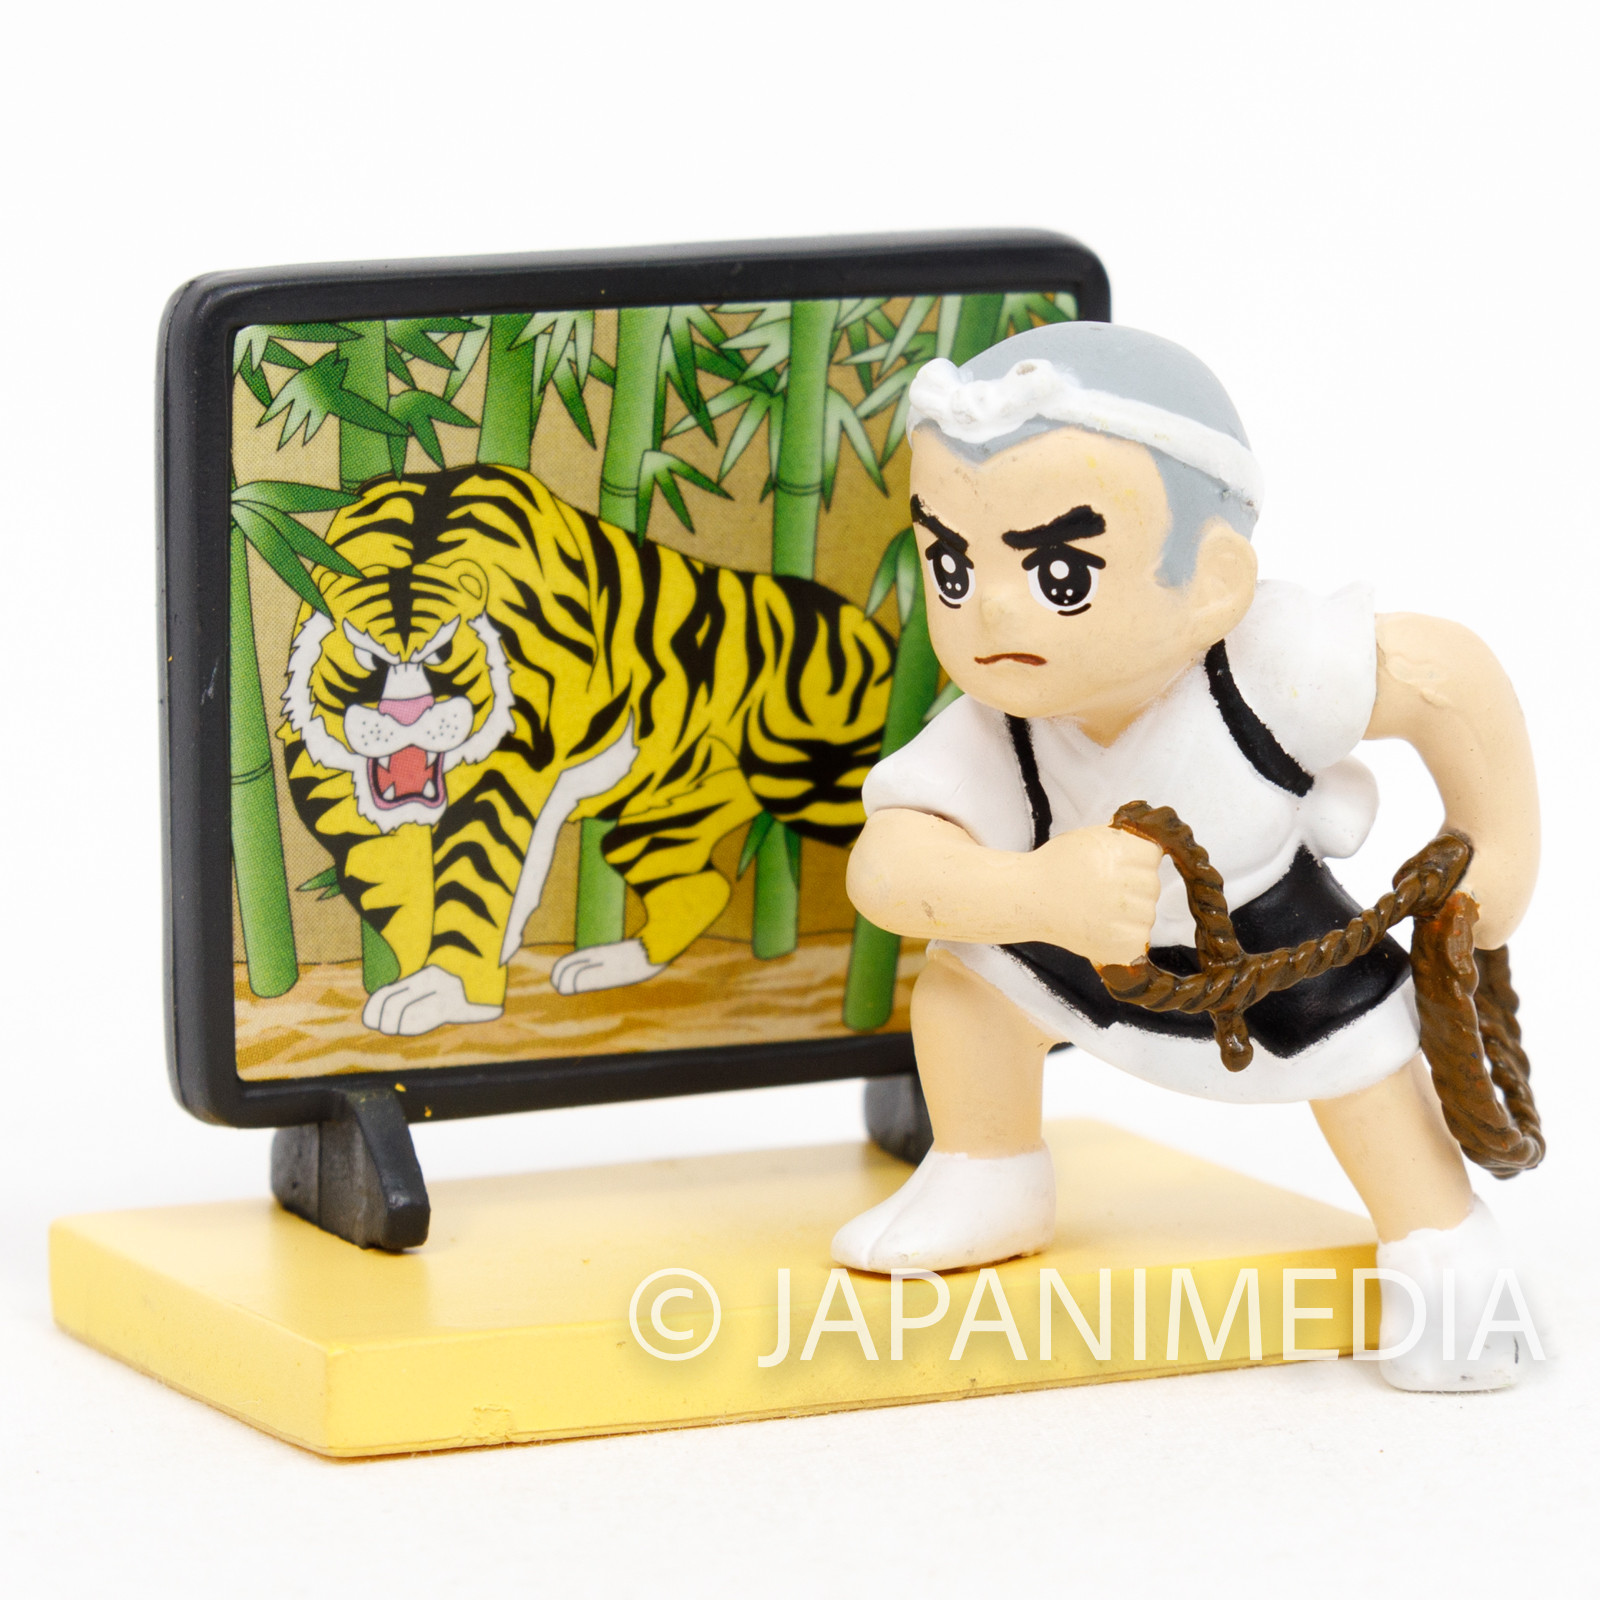 Ikkyu-san Miniature Diorama Figure Catching Tiger in Picture ver. JAPAN ANIME